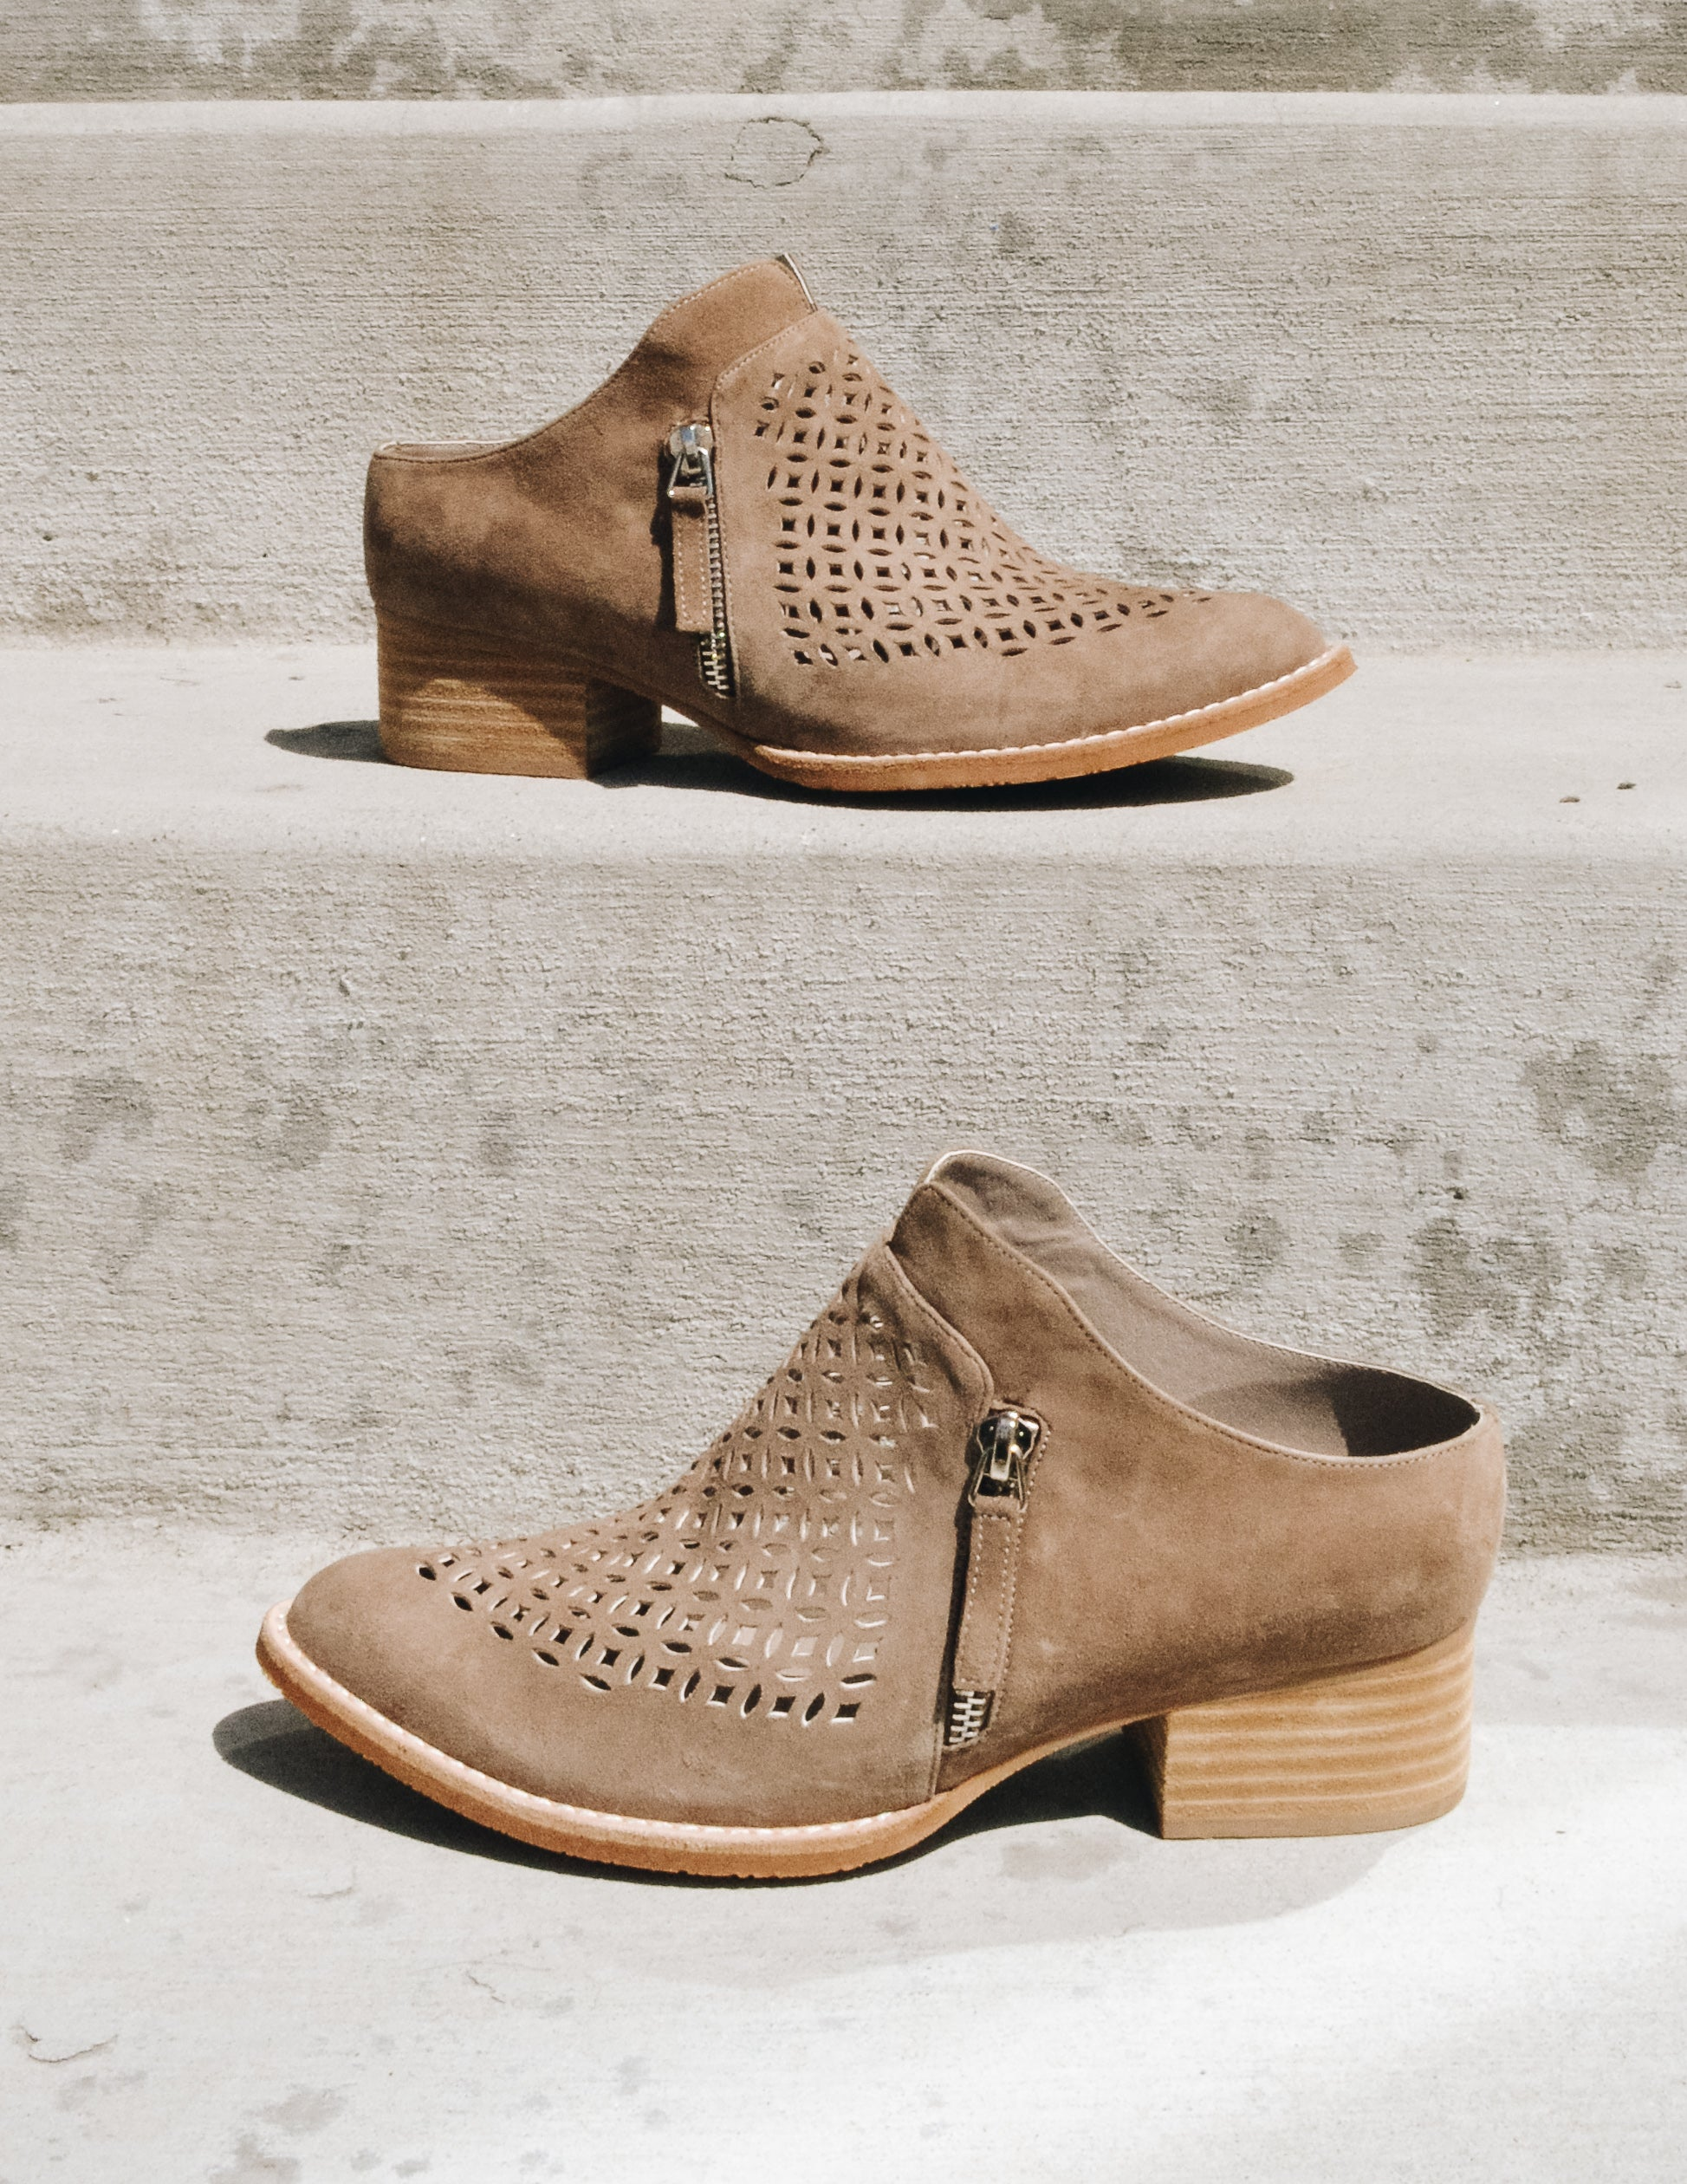 Taupe Taniss Sbicca bootie on concrete steps, one on top of the other - Elle Bleu Shoe Boutique